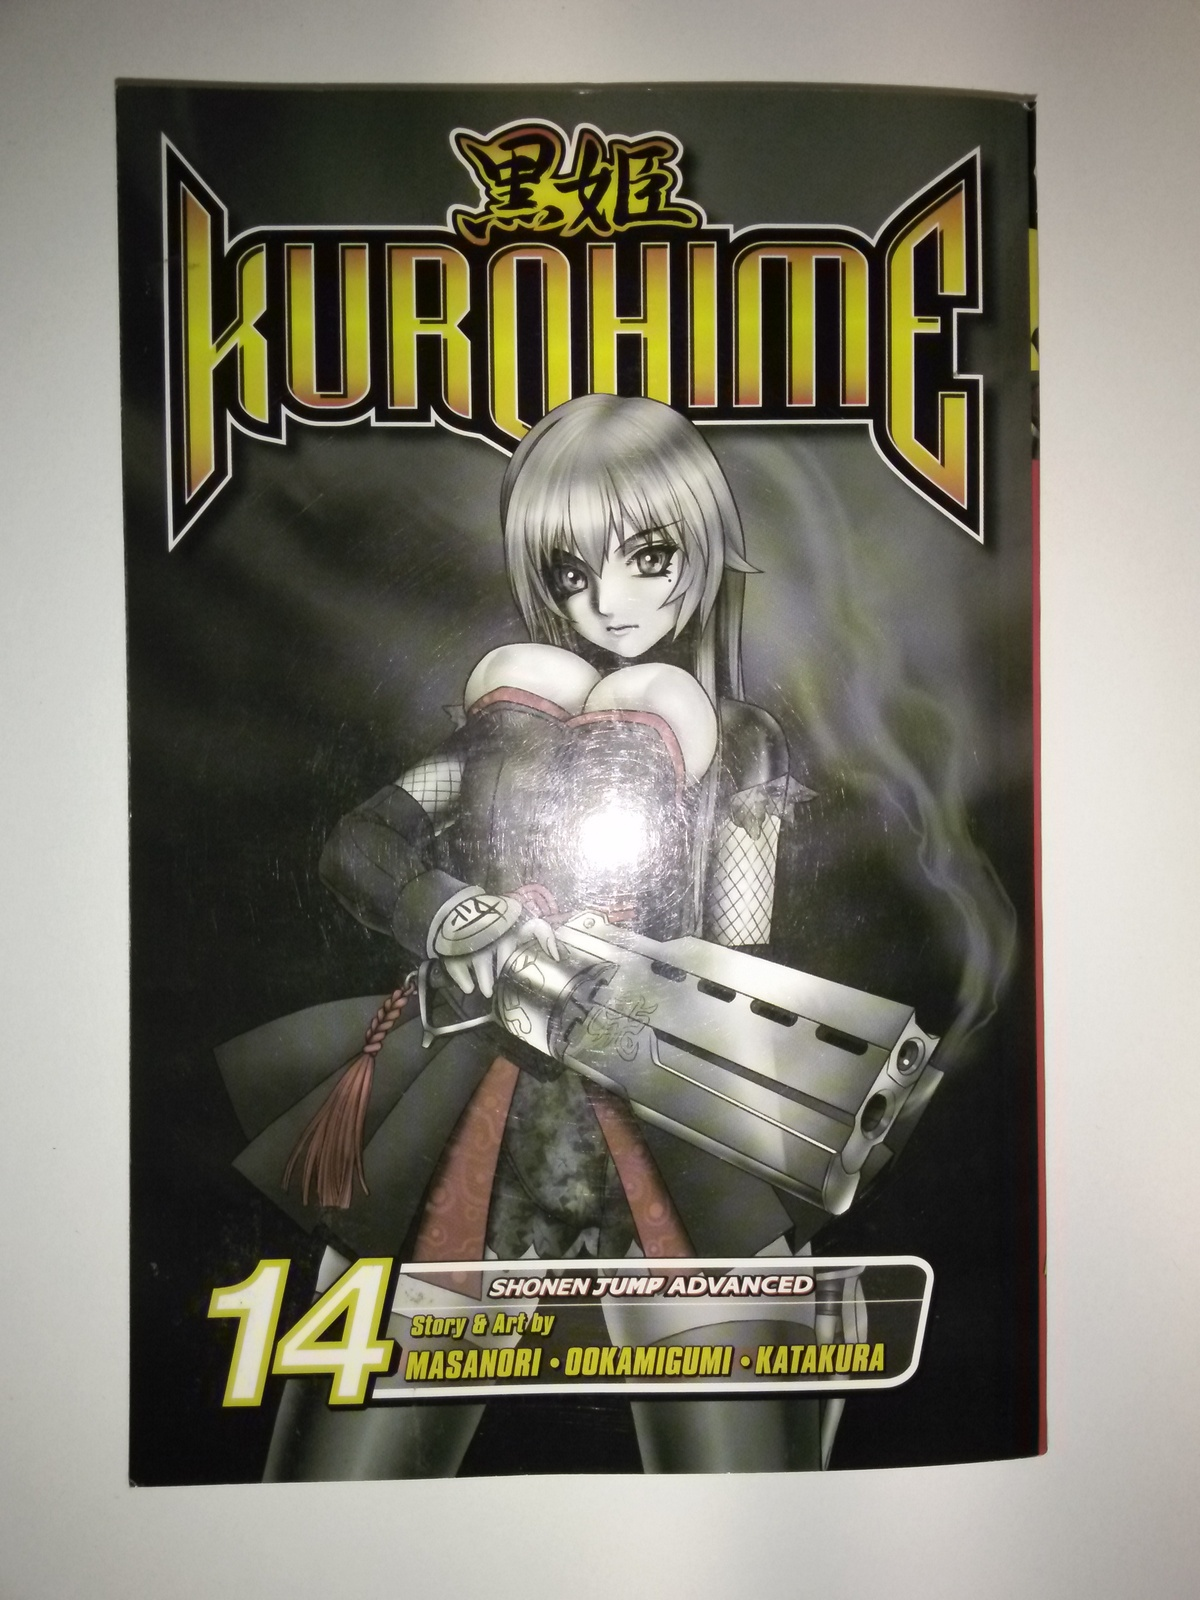 Primary image for Kurohime, Vol. 14 Paperback – November 4, 2009 BRAND NEW COLLECTOR'S ITEM